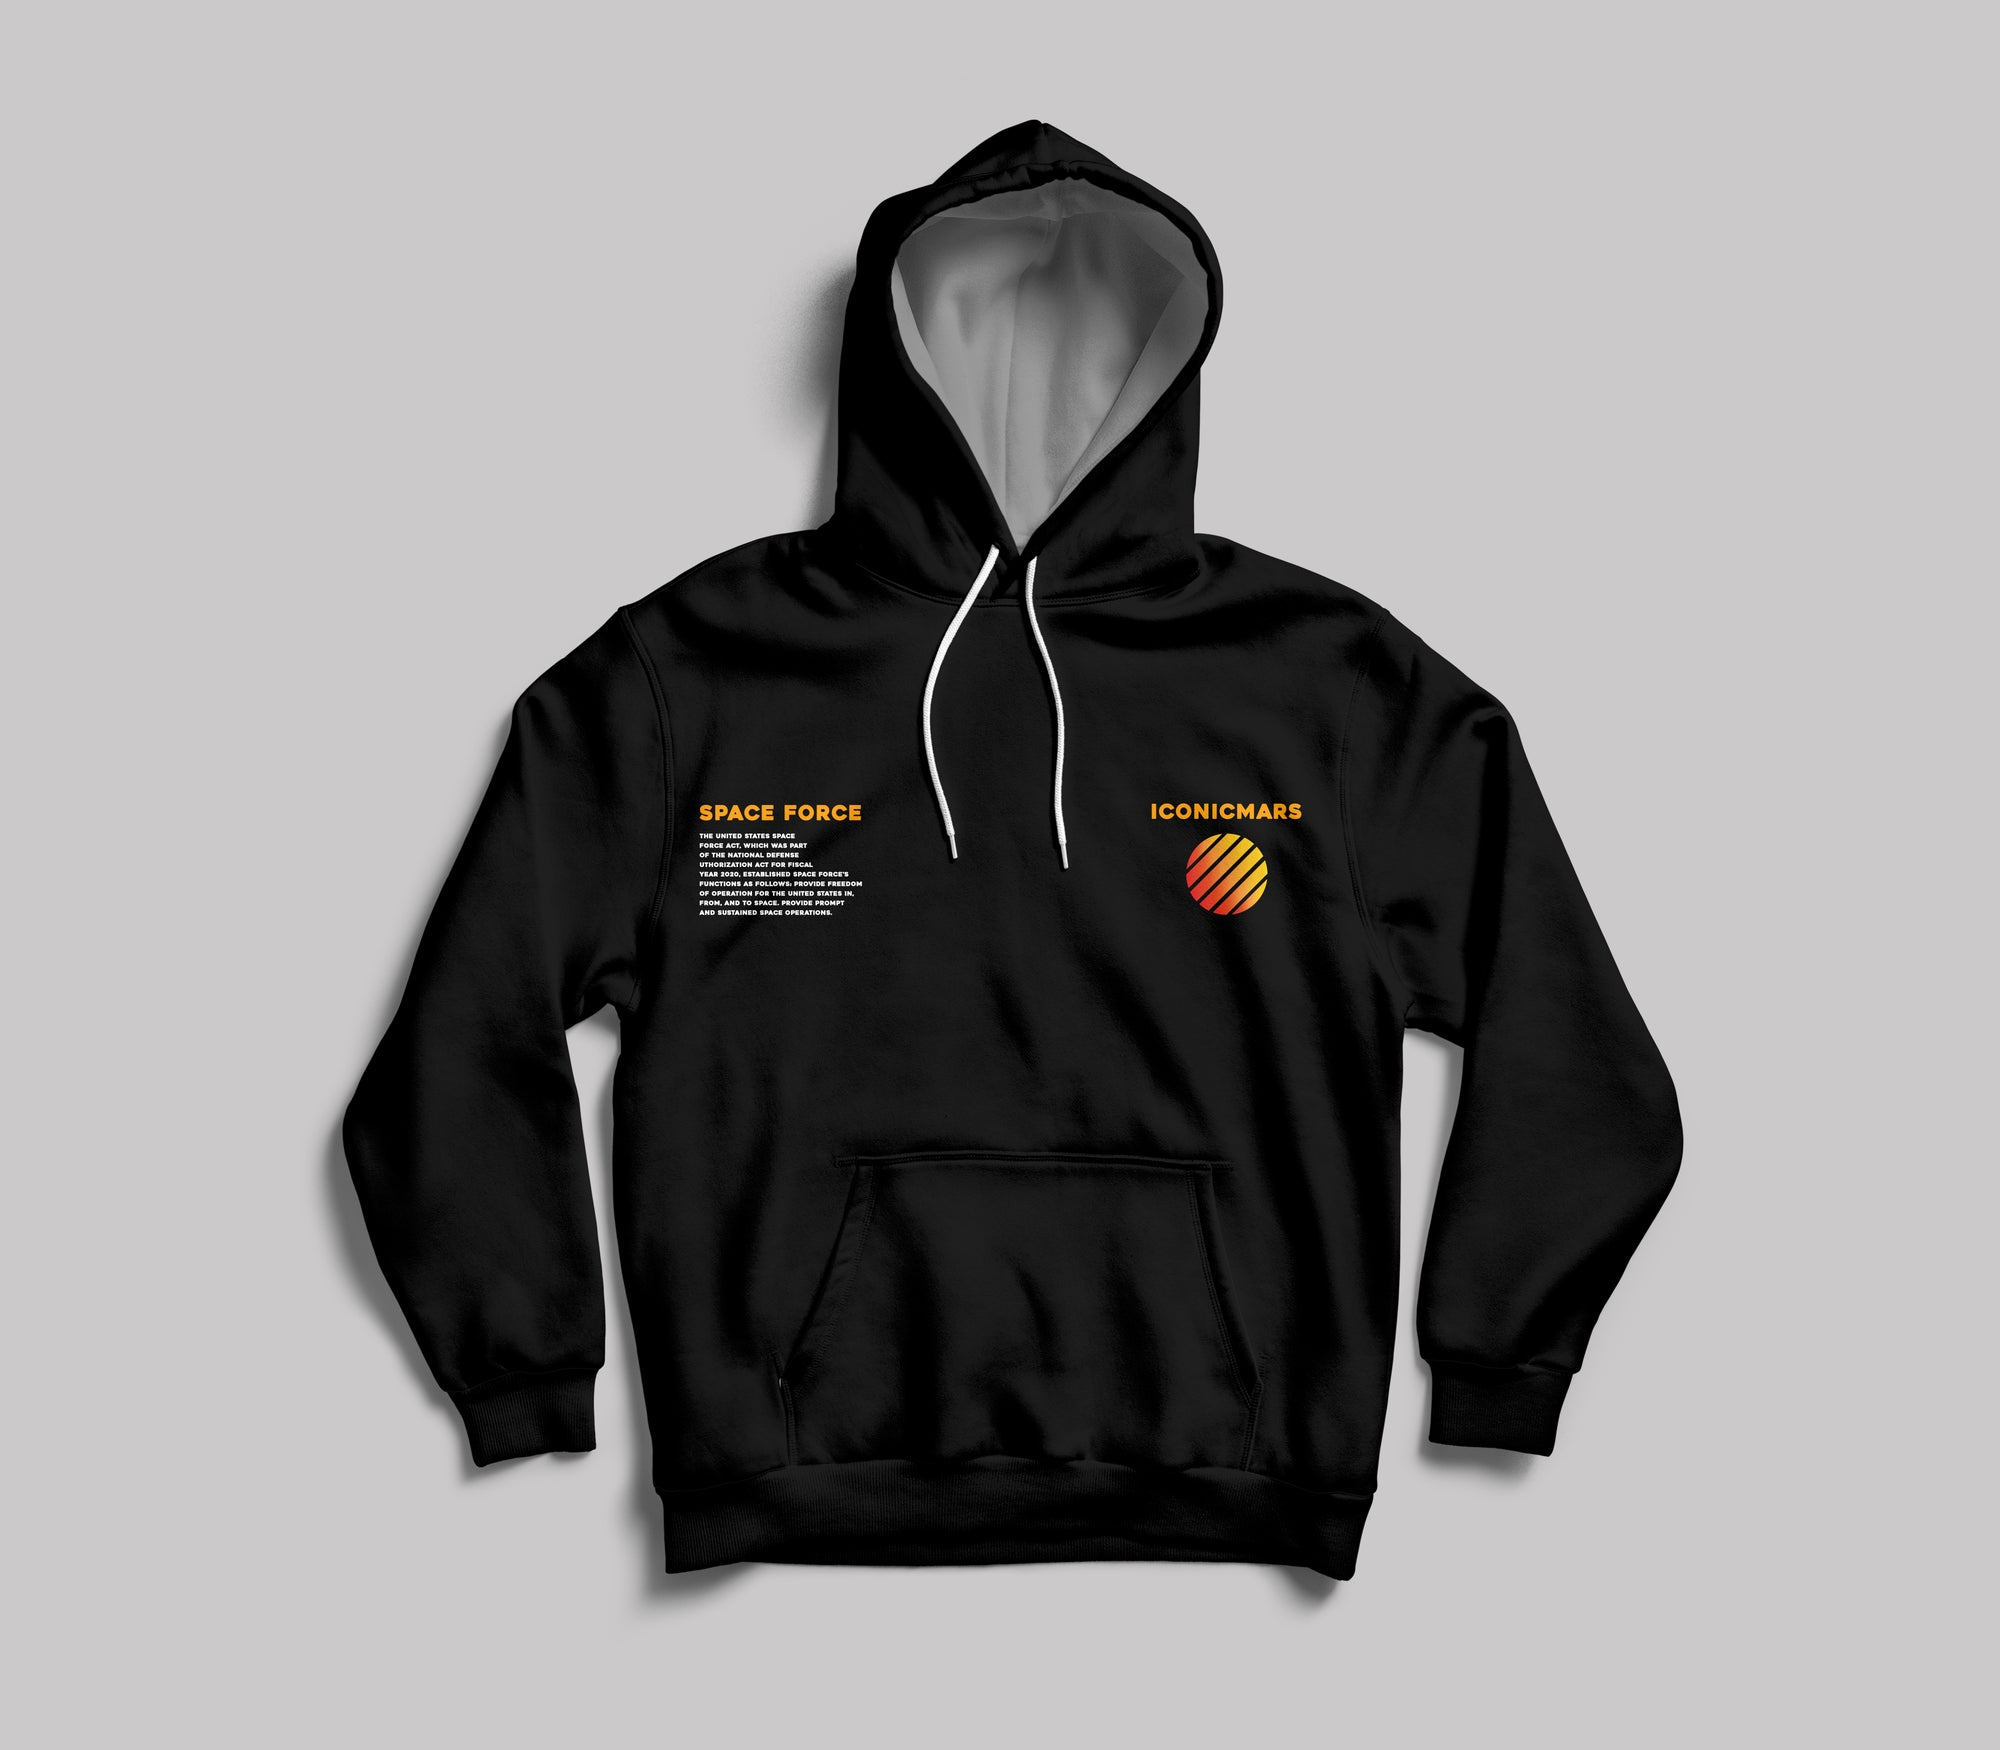 Space Force Pullover Hoodie - Iconic Mars